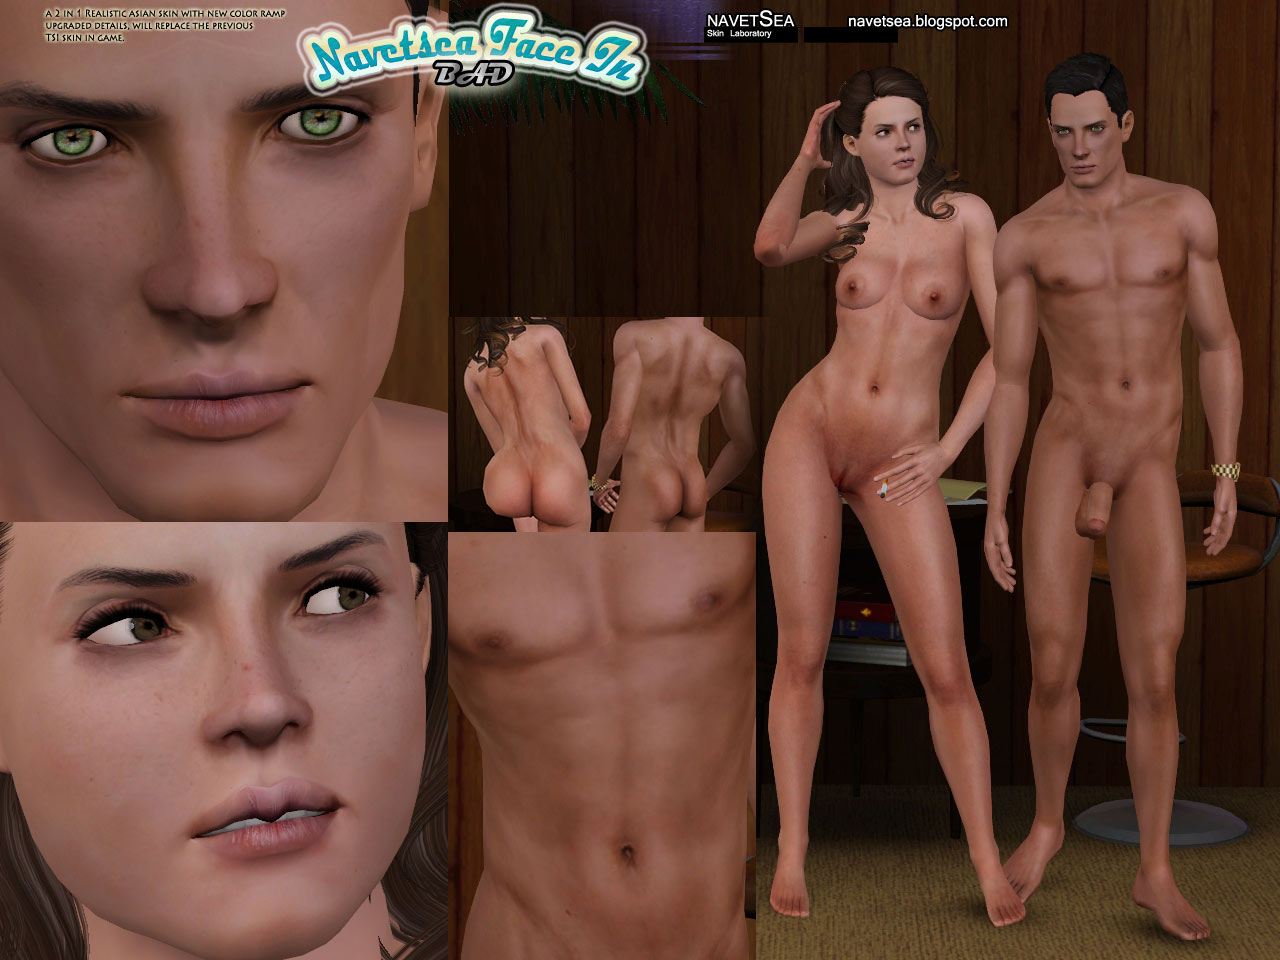 The sims 3 porn mod exploited video